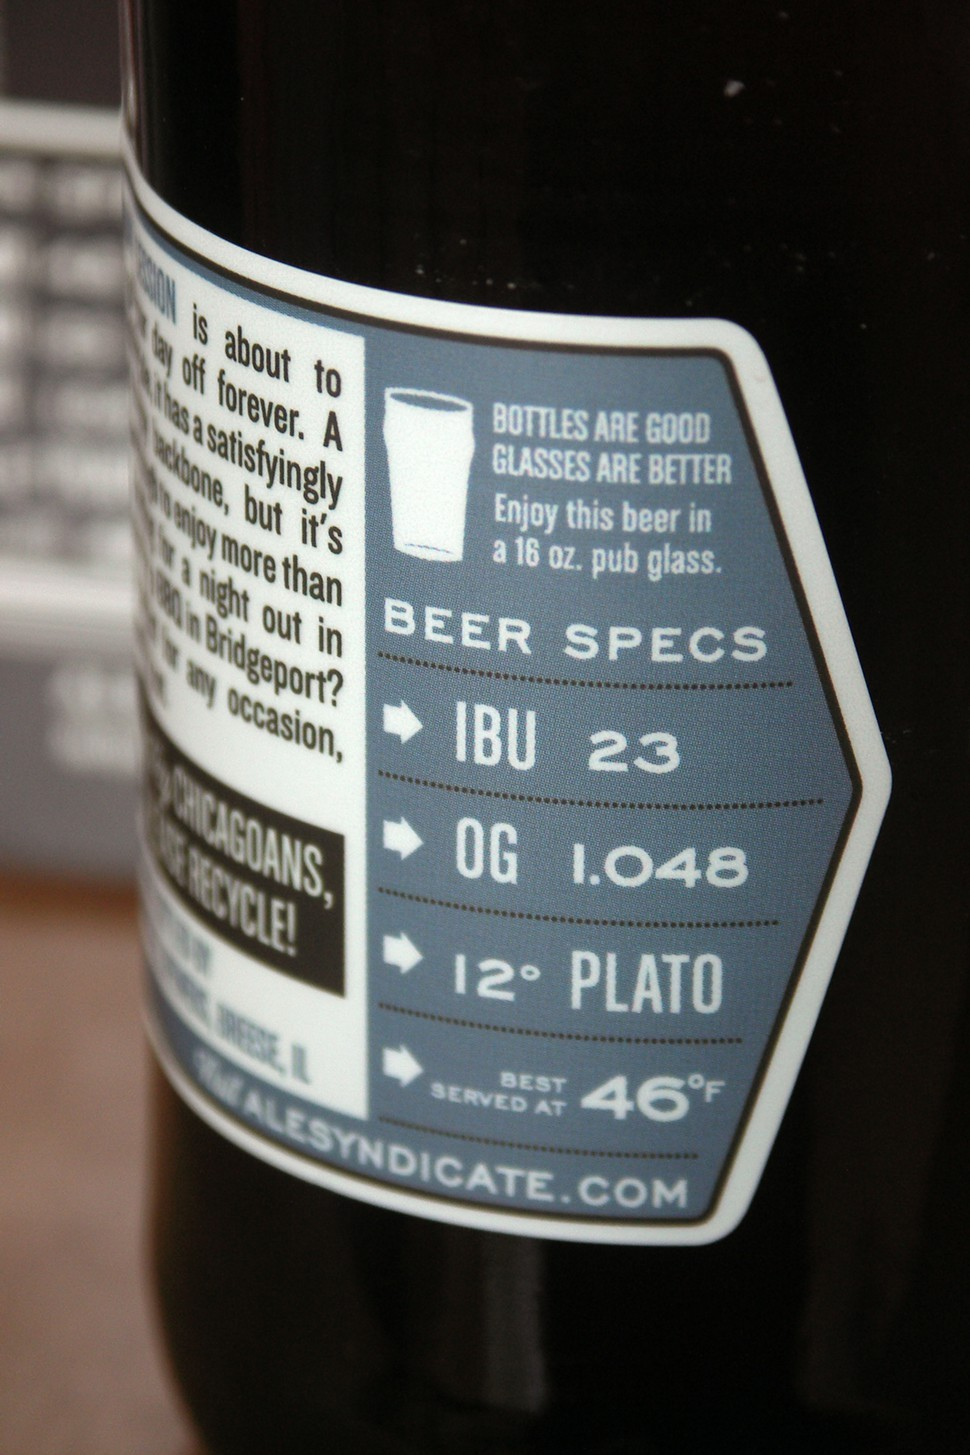 Beer specs--not the same as beer goggles